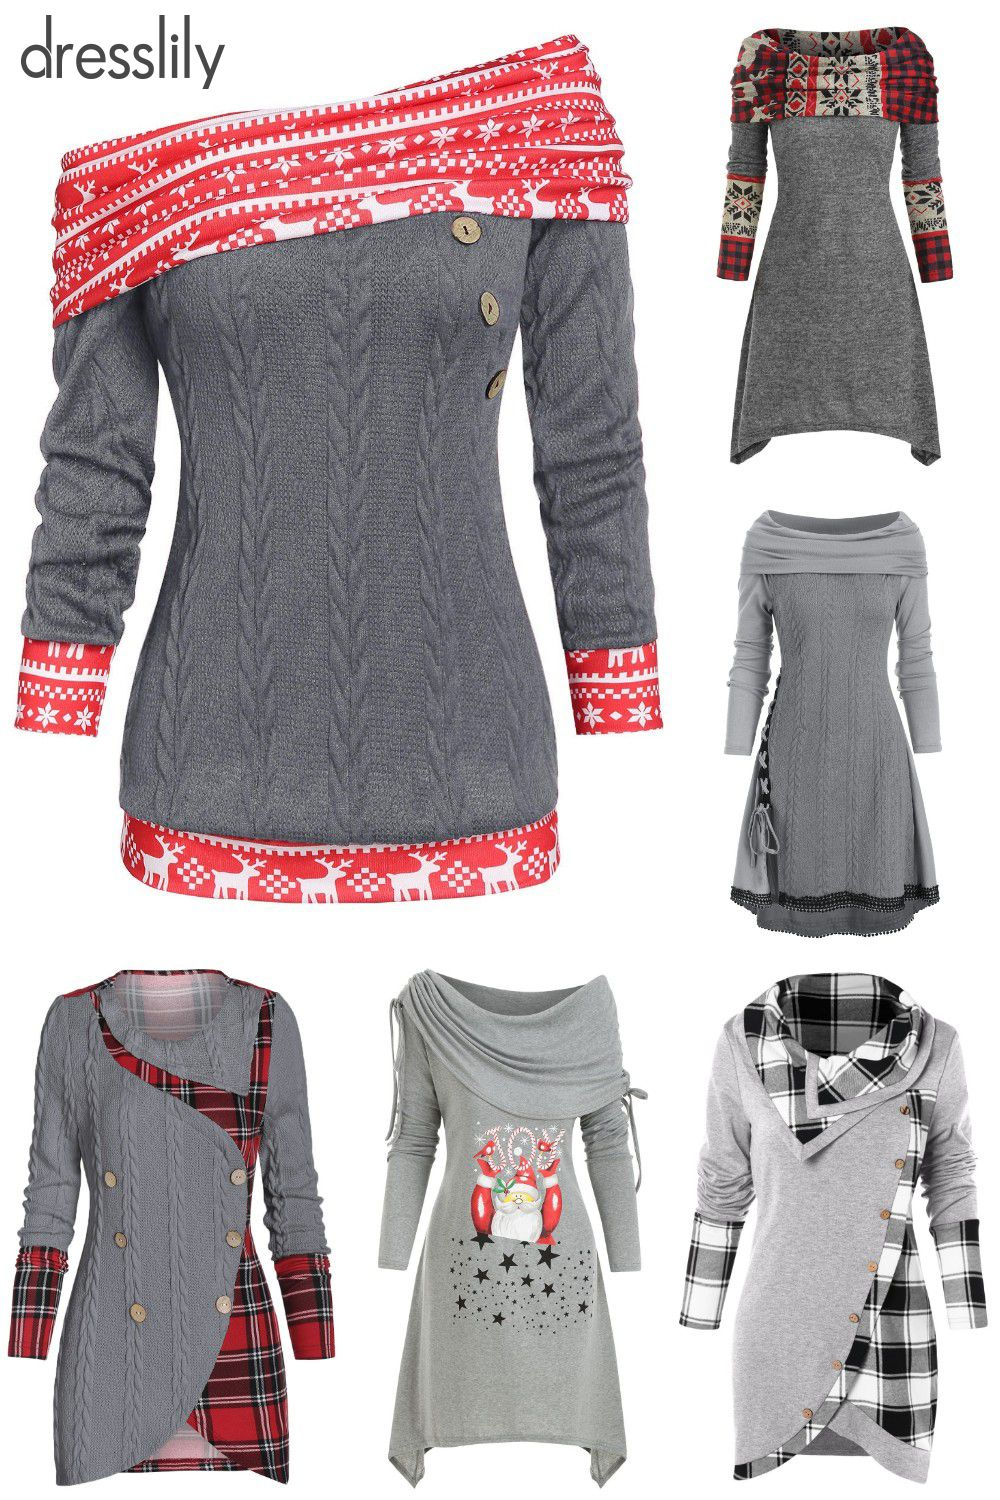 Sweaters and Cardigans | Trendy Sweaters & Cardigans | Women's Sweaters | Plus Size Winter Outfits #casualchristmasoutfitsforwomen